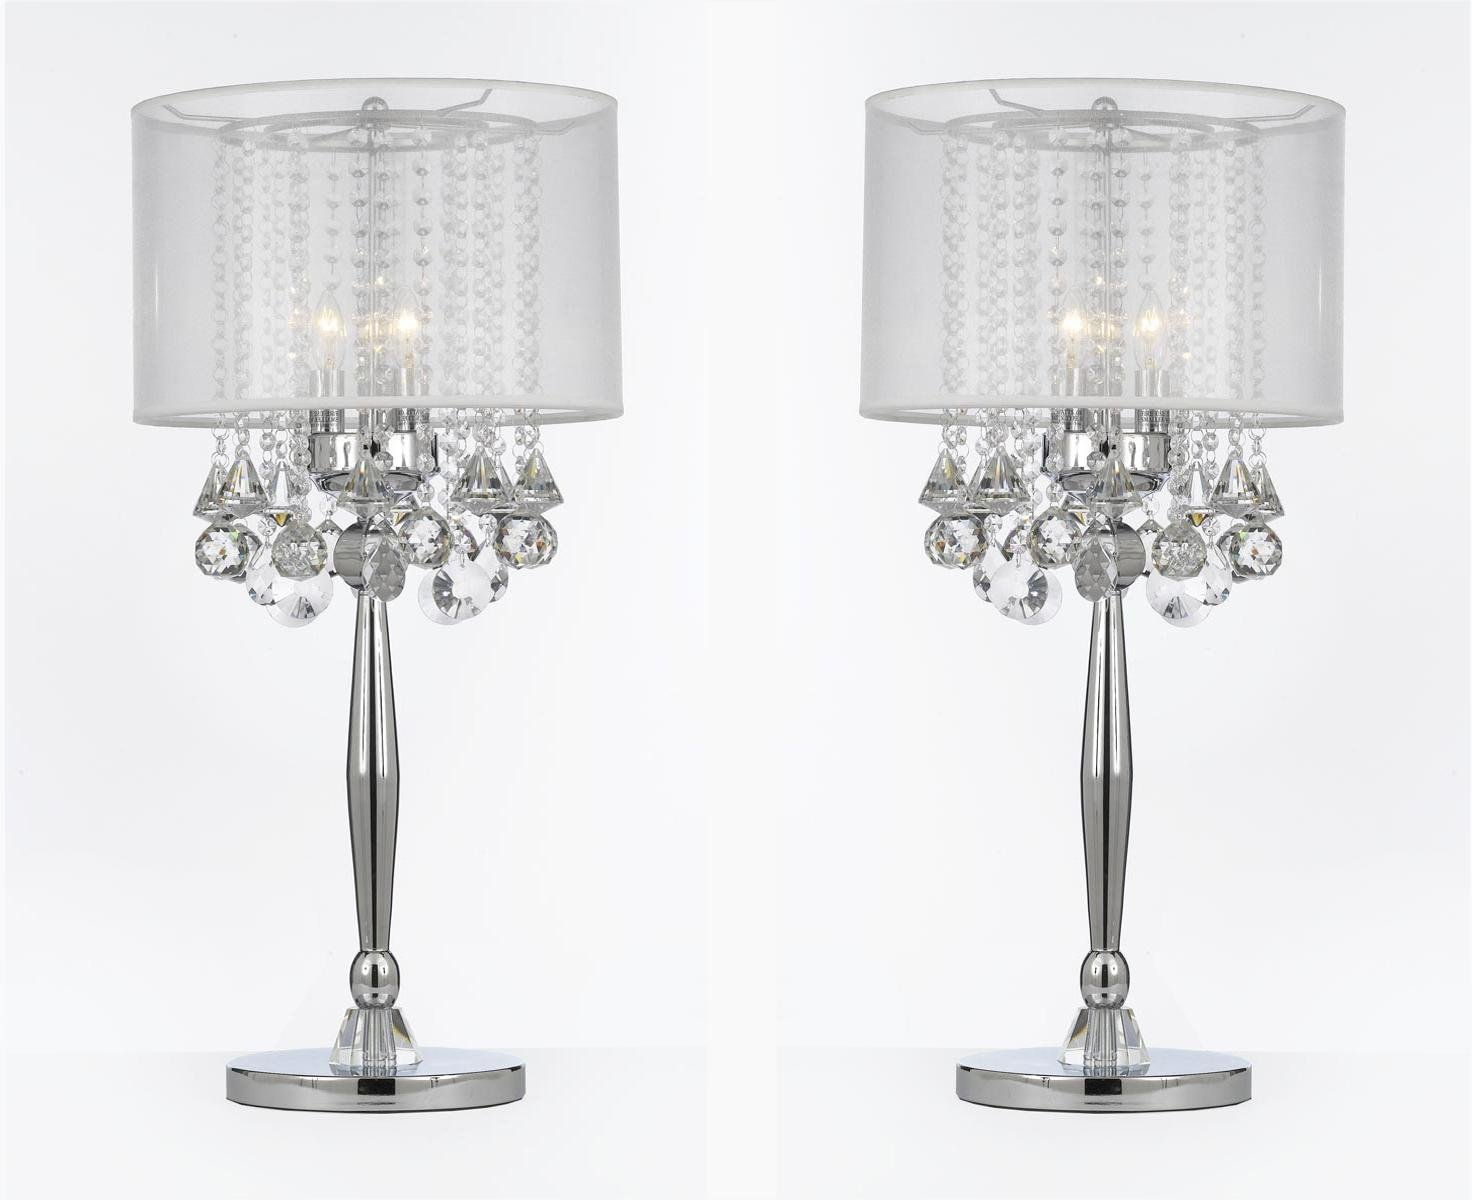 SET OF 2 ! Silver Mist 3 Light Chrome Crystal Table Lamp with White Shade Transitional Contemporary Modern Lamp